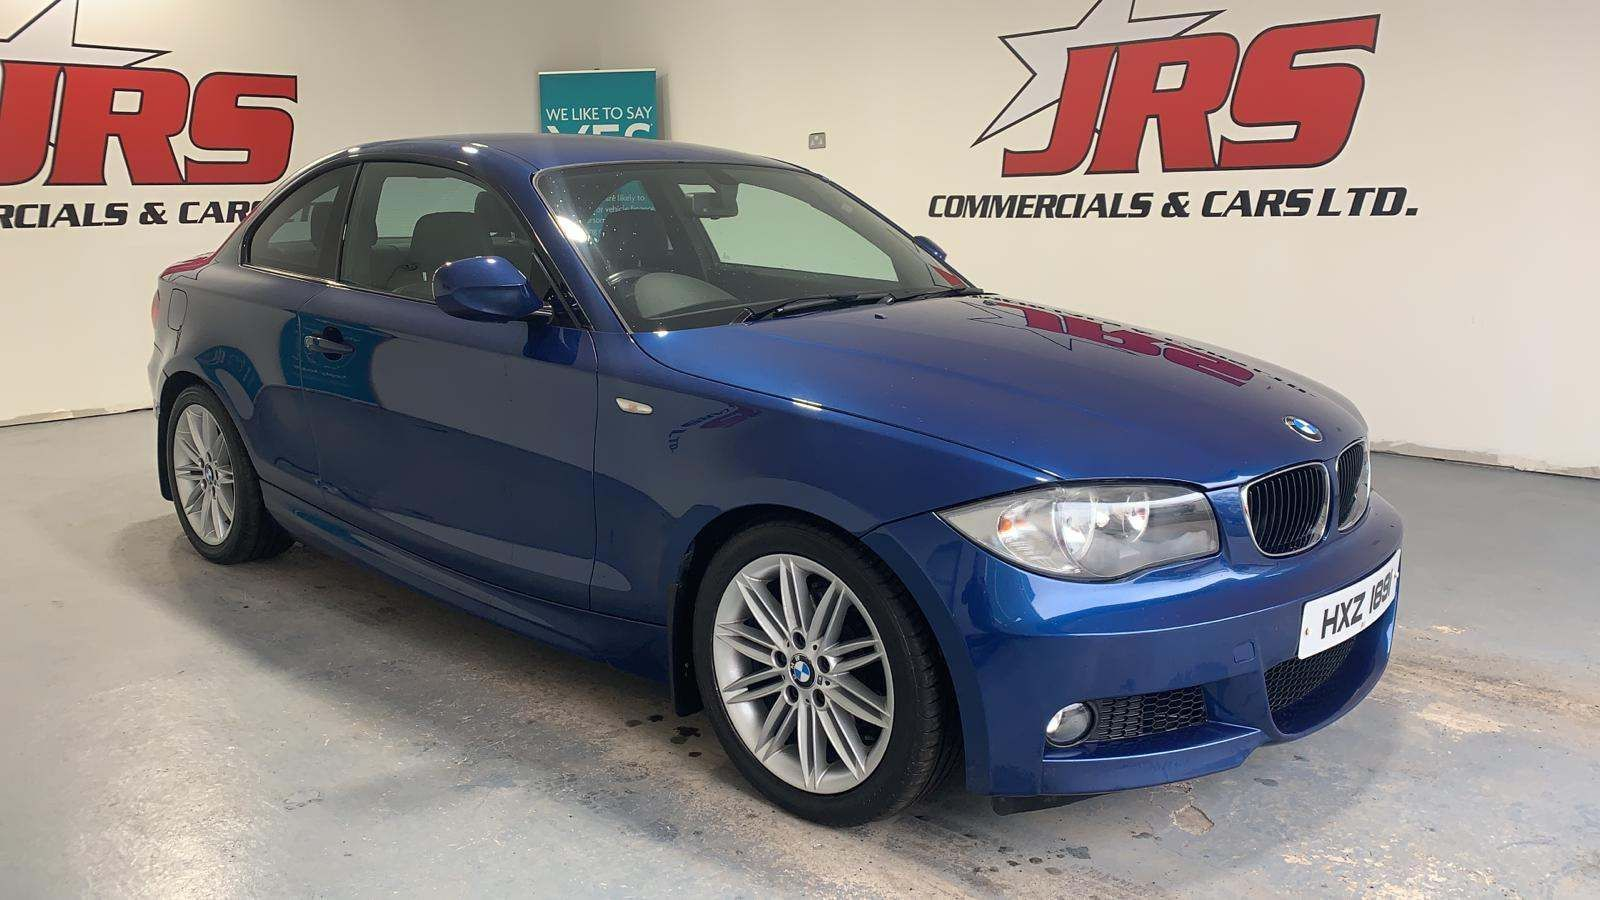 2010 BMW 1 Series 2.0 118d M Sport Diesel Manual **£30 Road Tax** – J R S Commercials And Cars Dungannon